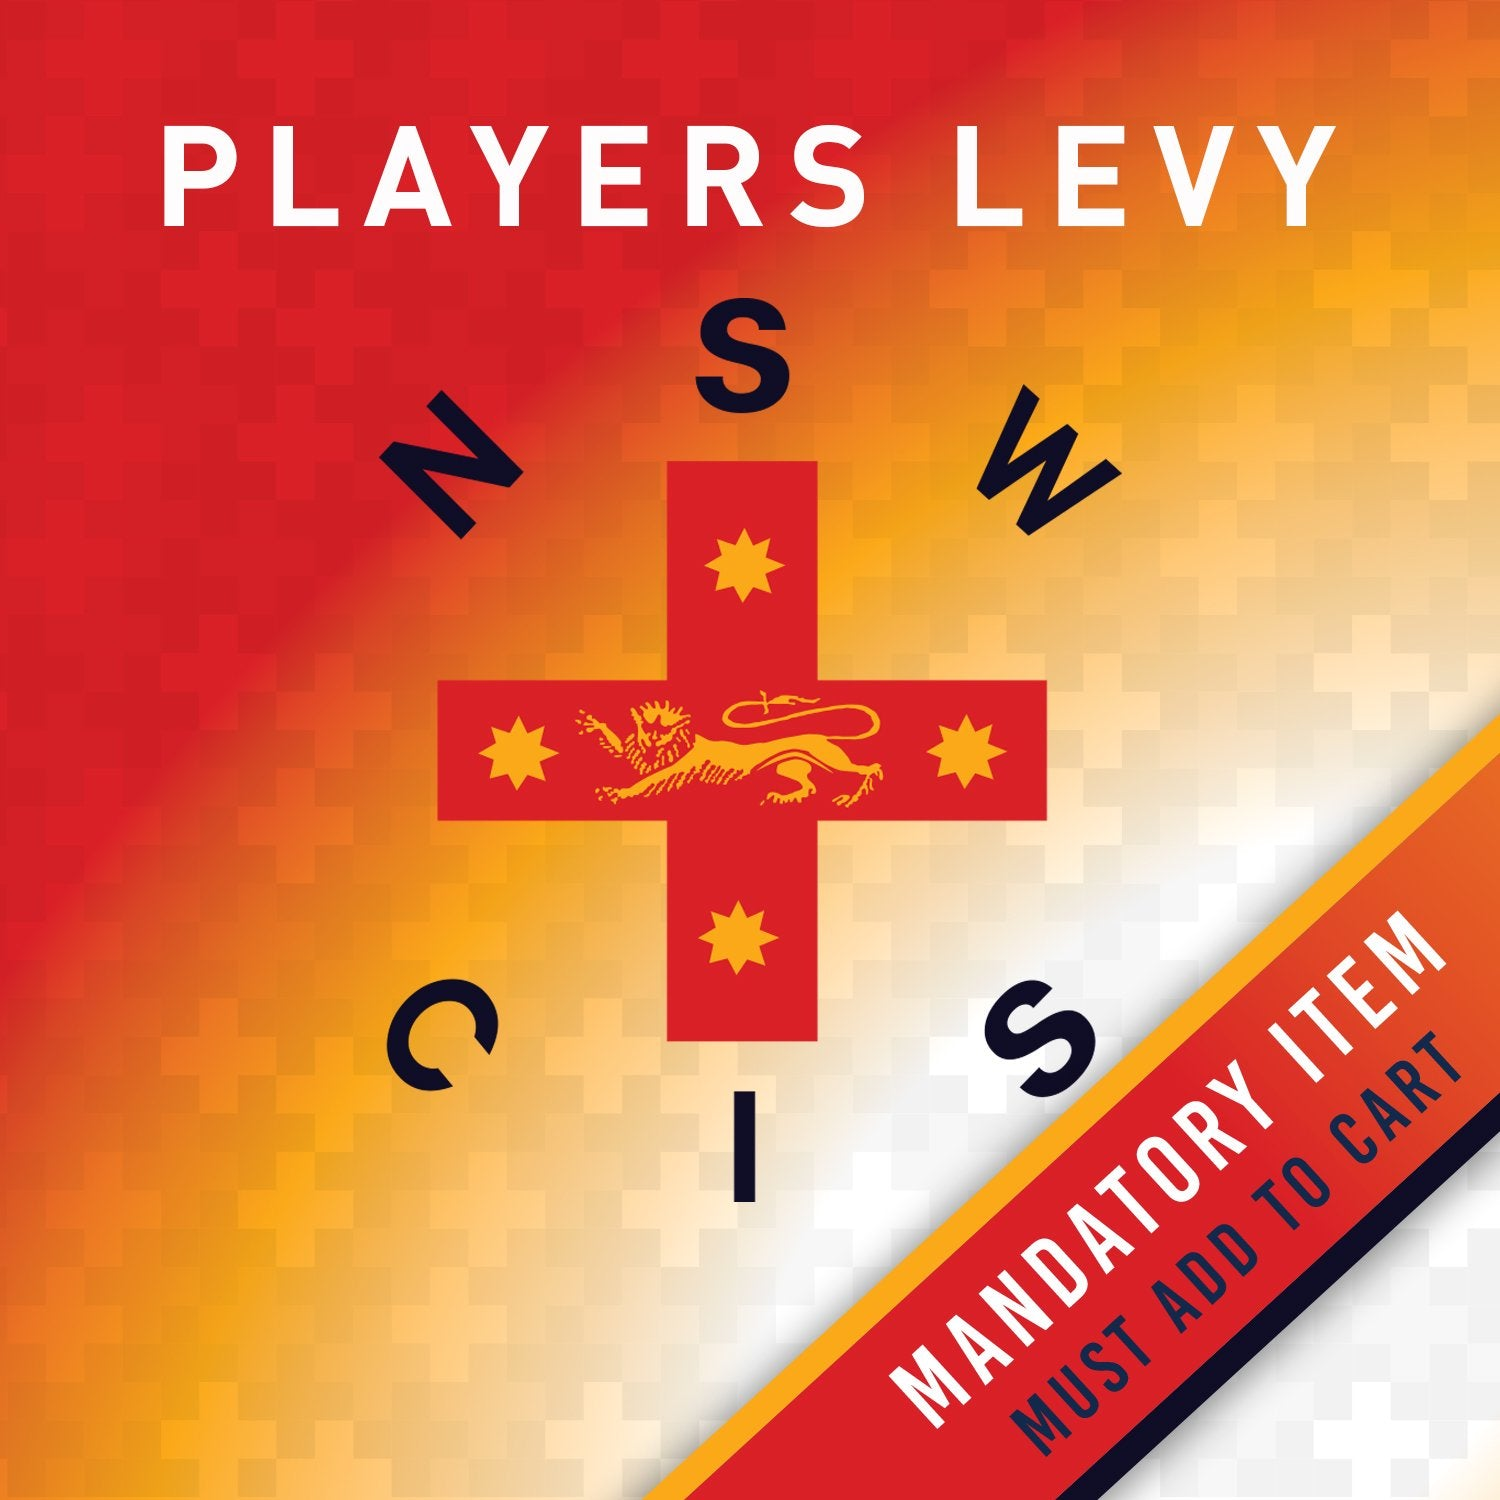 MANDATORY ITEM - PLAYERS LEVY - NSW CIS Primary Girls Tennis